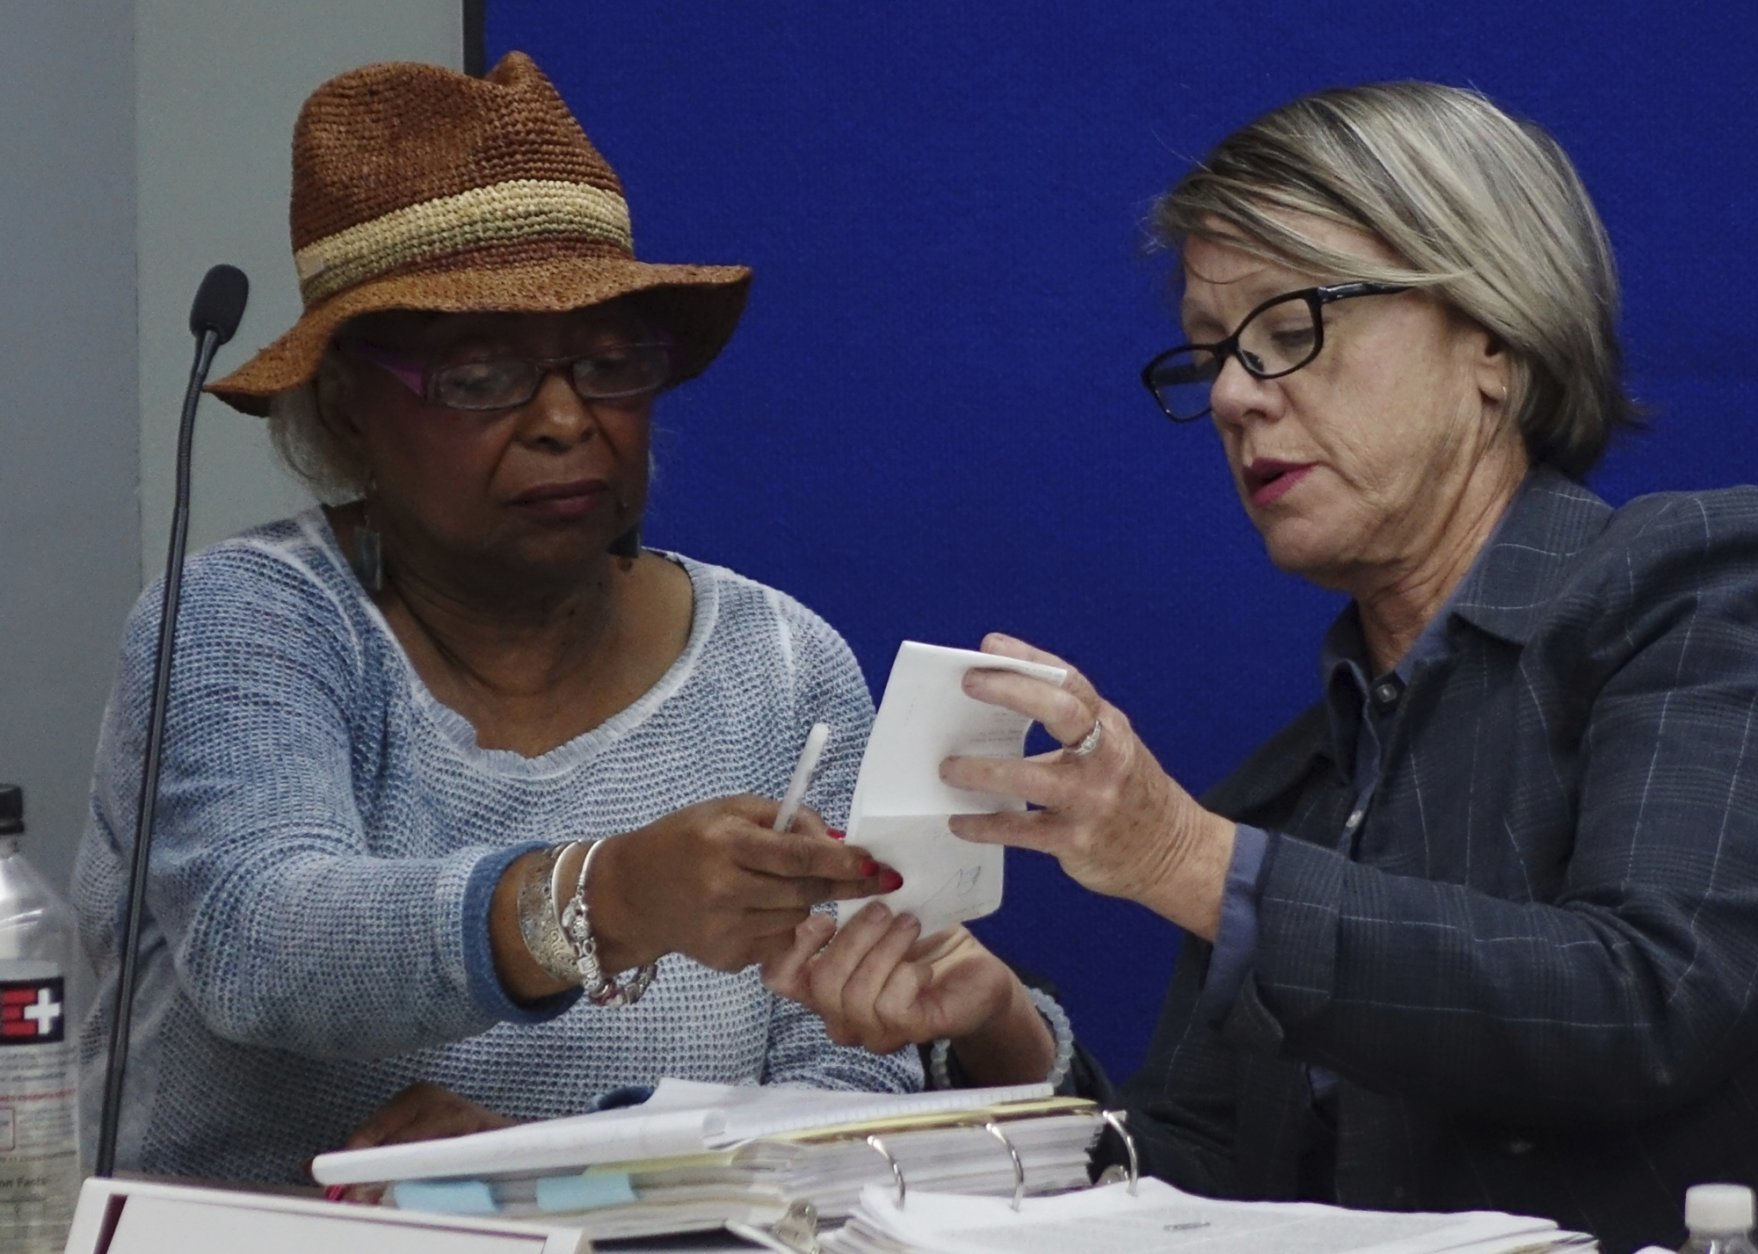 Broward Supervisor of Elections Brenda Snipes, left, and judge Betsy Benson of the election canvassing board, listen to arguments, Sunday, Nov. 11, 2018, at the Broward Supervisor of Elections office in Lauderhill, Fla. (Joe Cavaretta /South Florida Sun-Sentinel via AP)